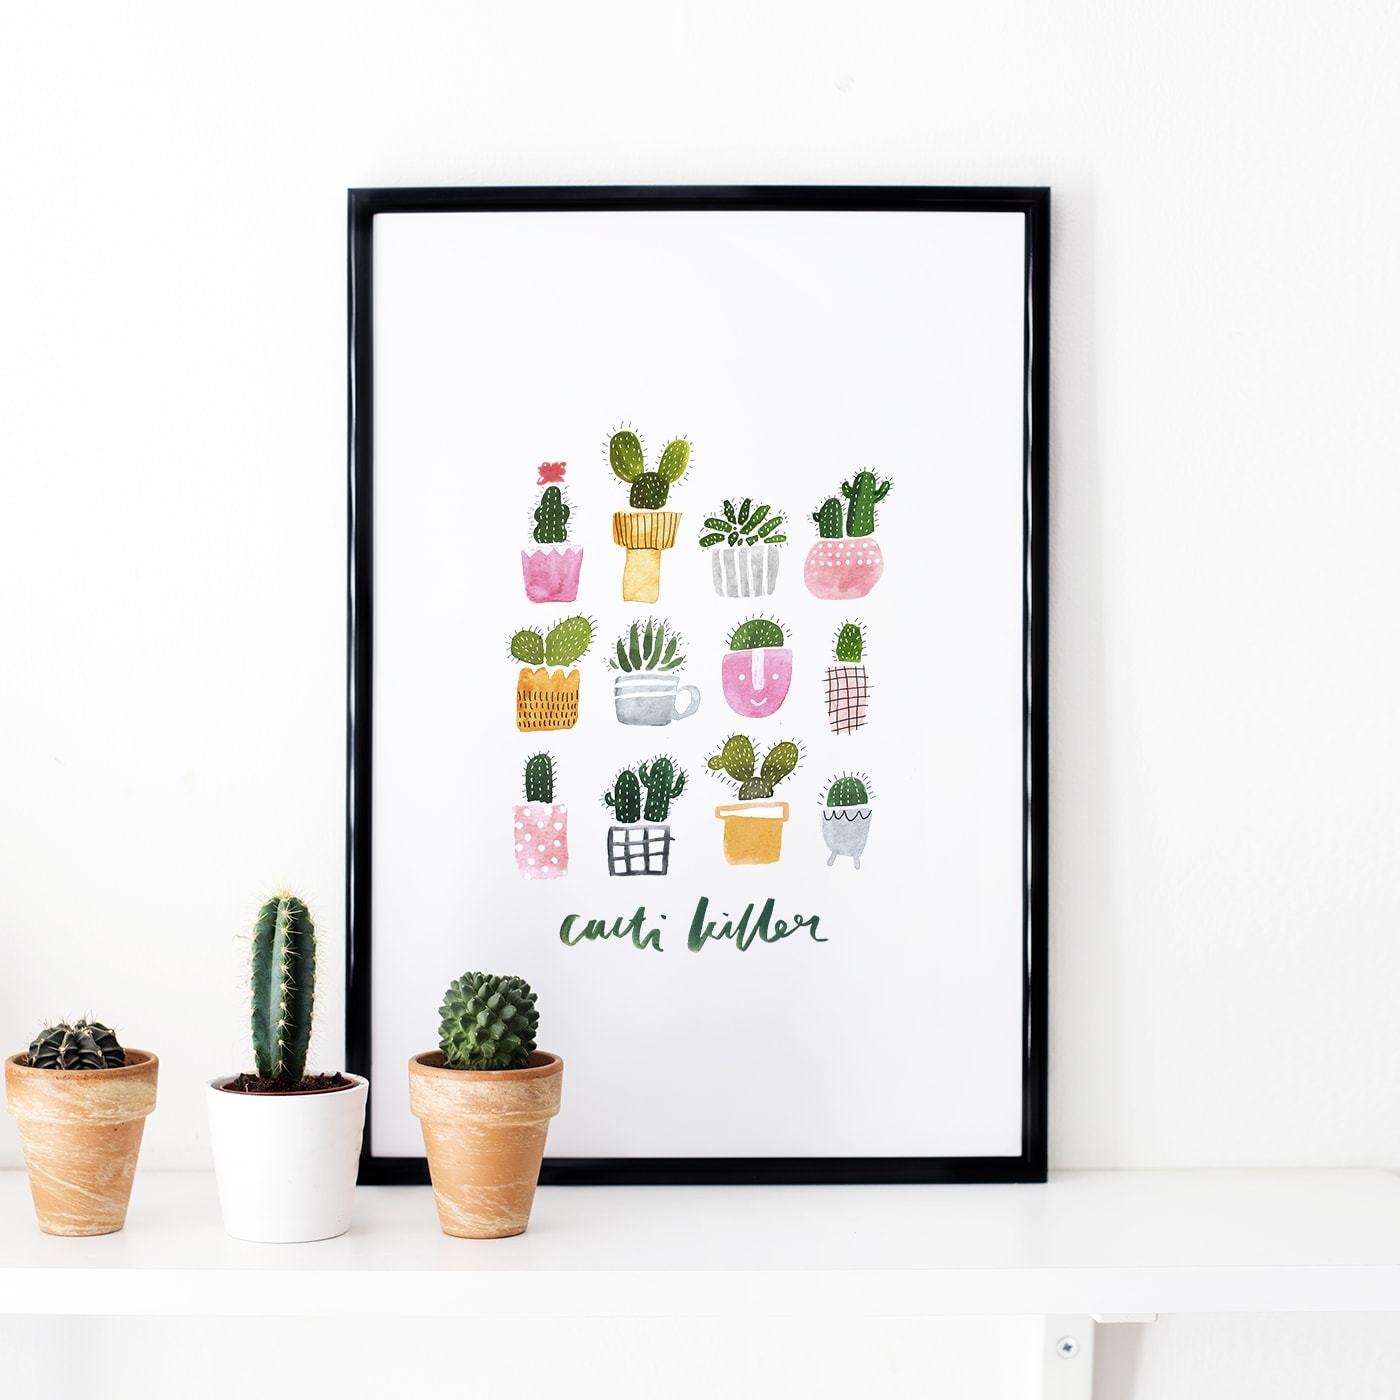 cacti-killer-art-print-illustrations-cactus-christmas-gifts